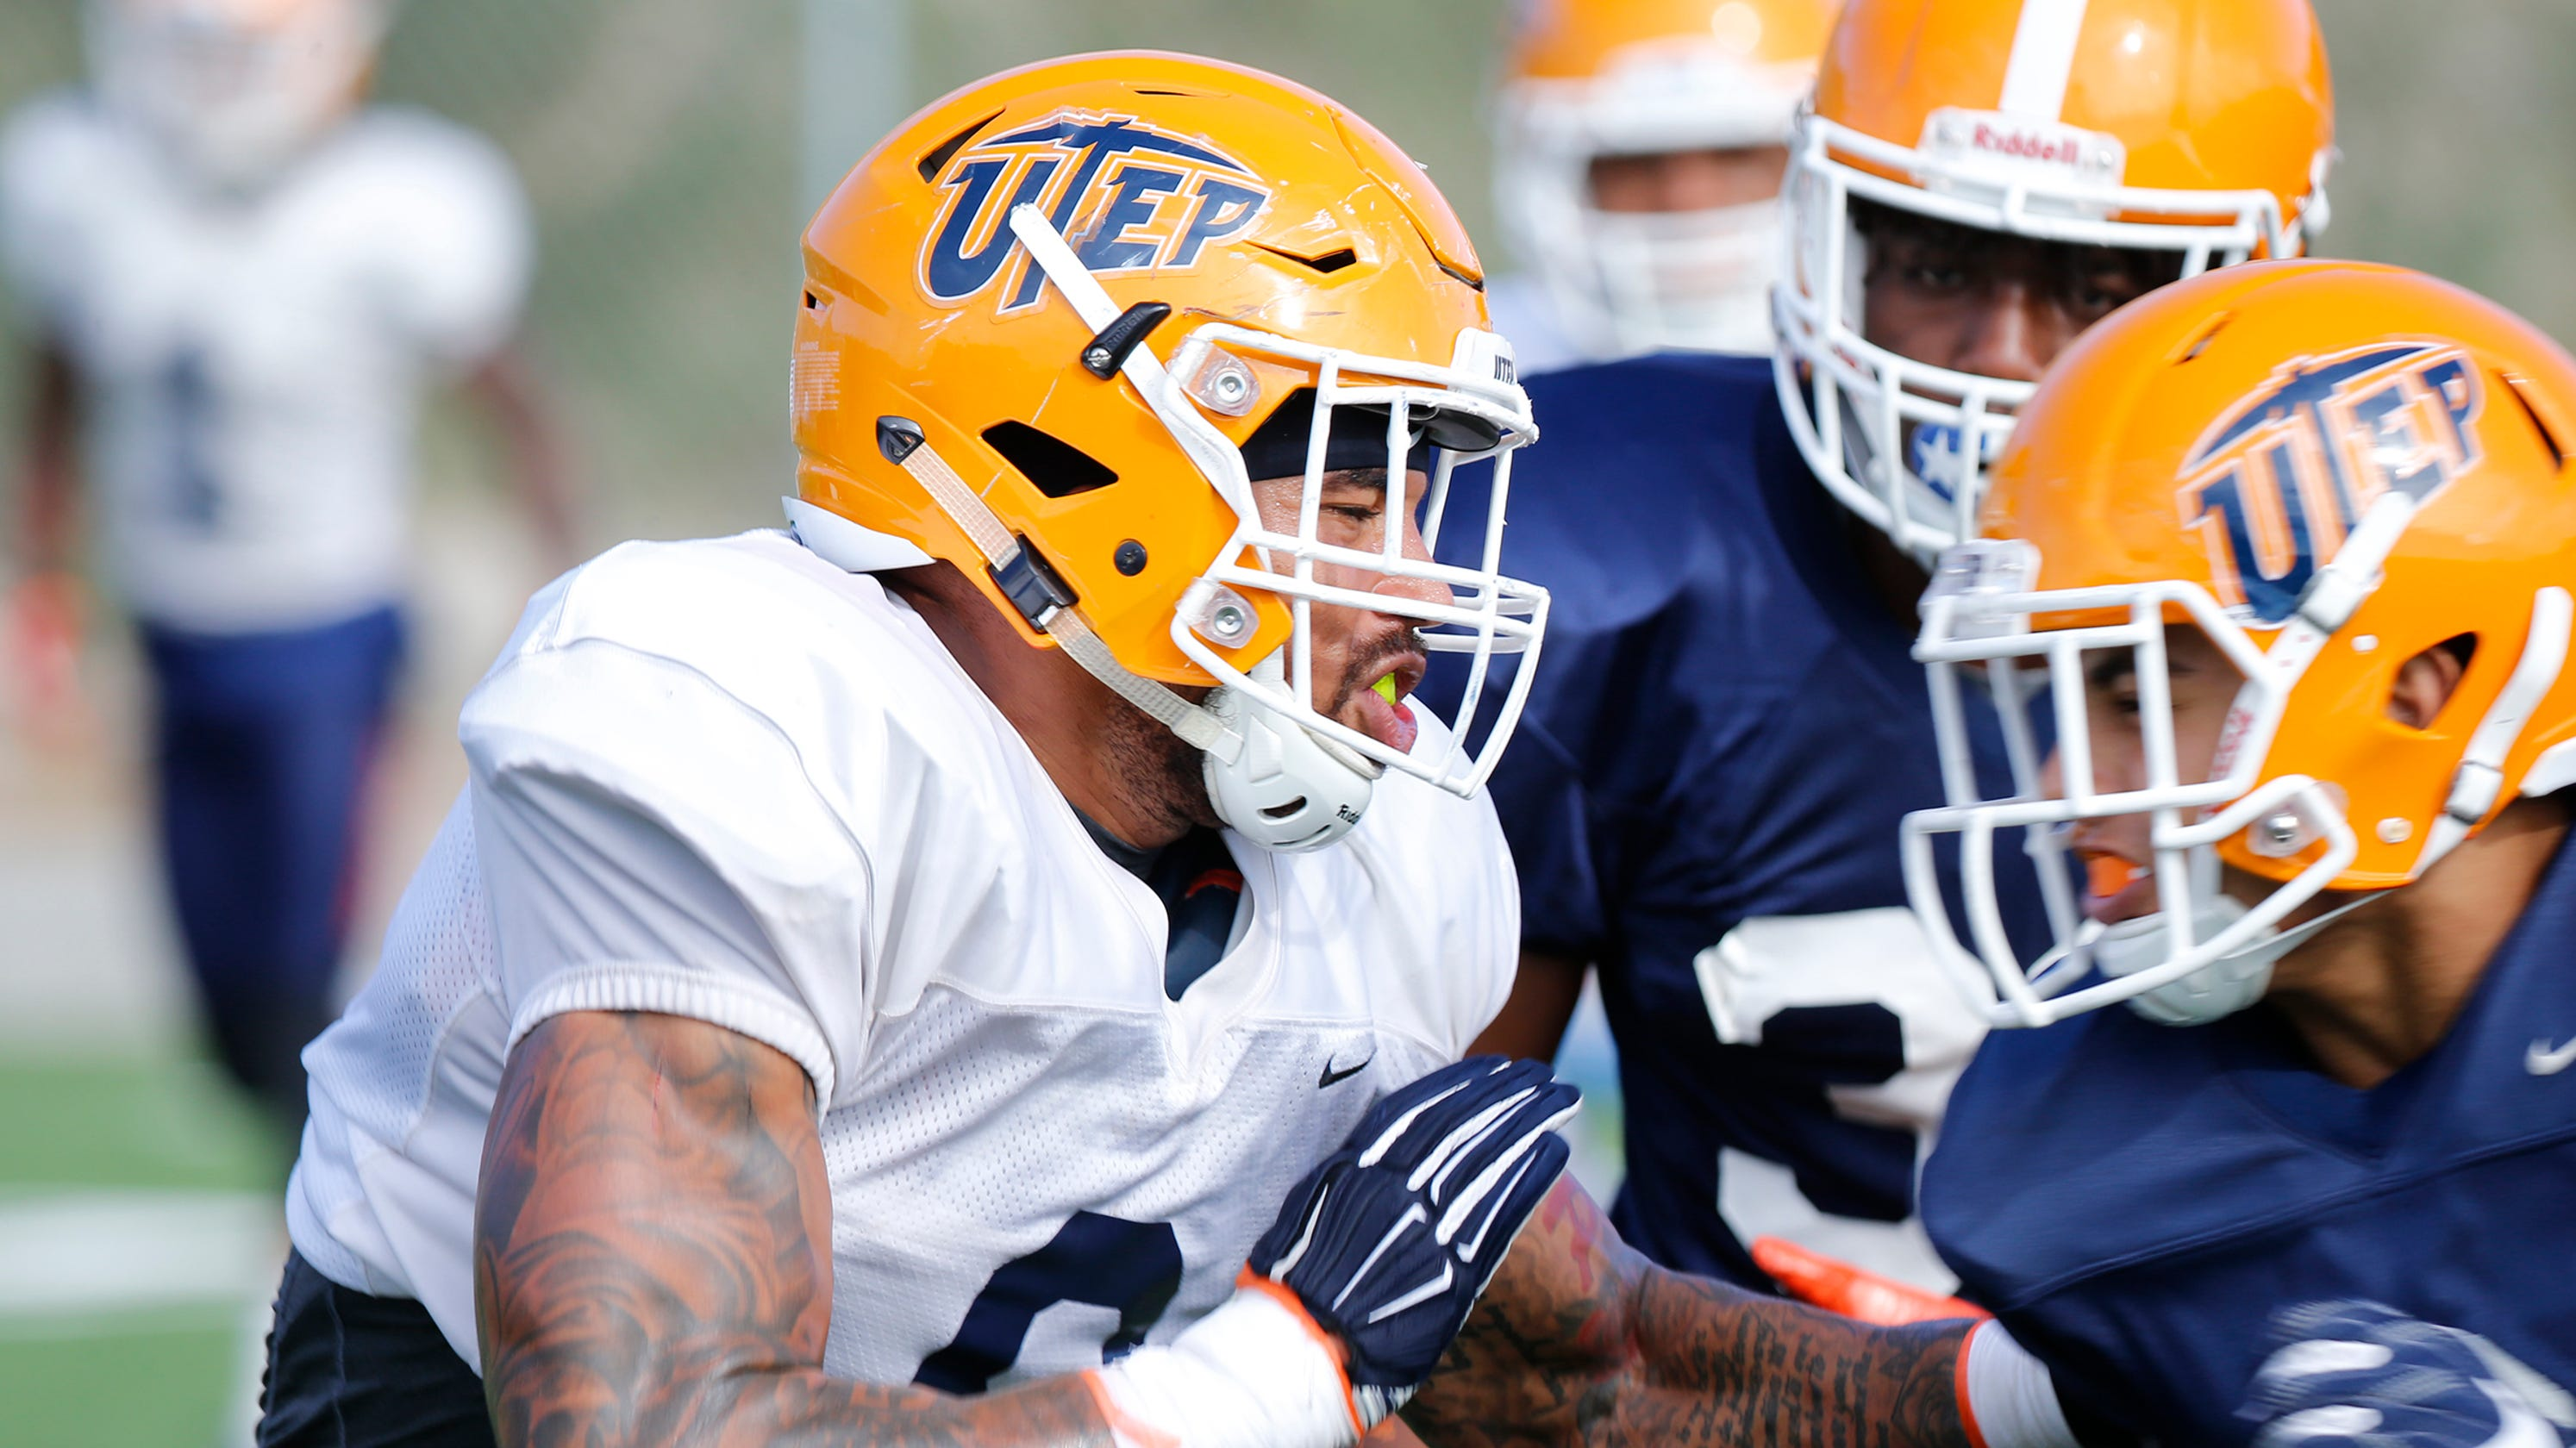 Metz, Hotchkins enjoy new roles with UTEP Miners football team